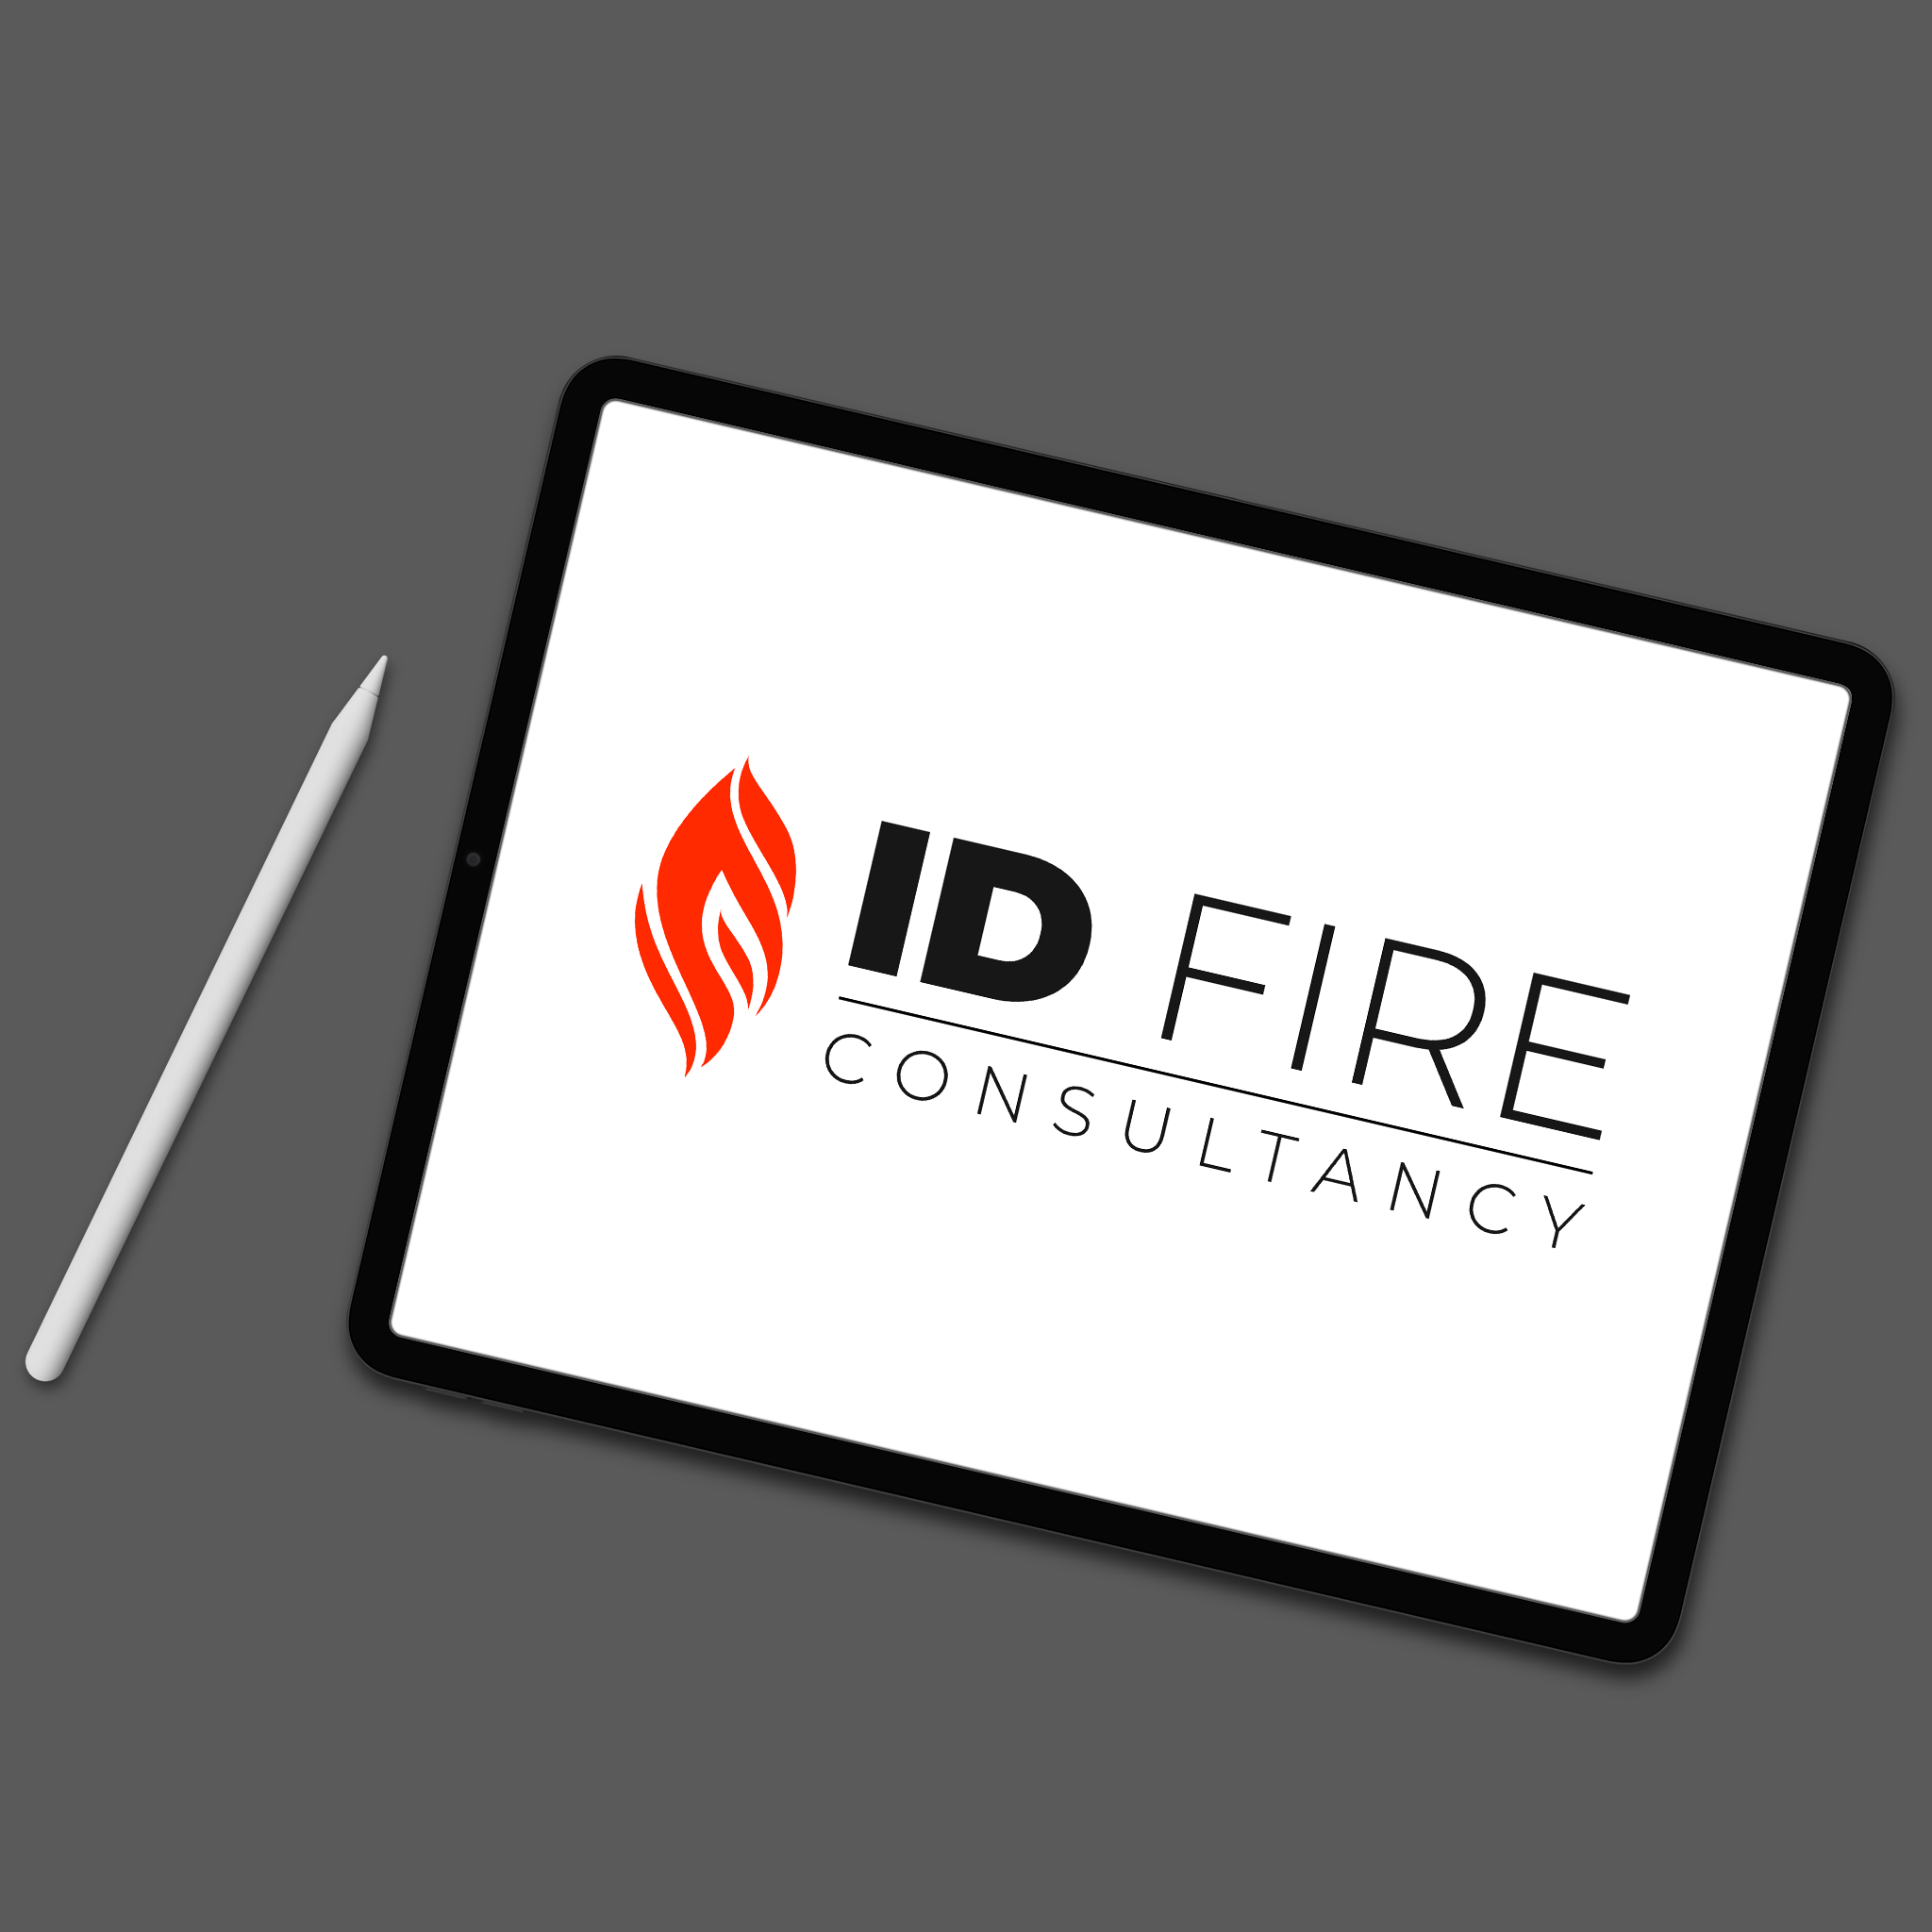 ID Fire Consultancy